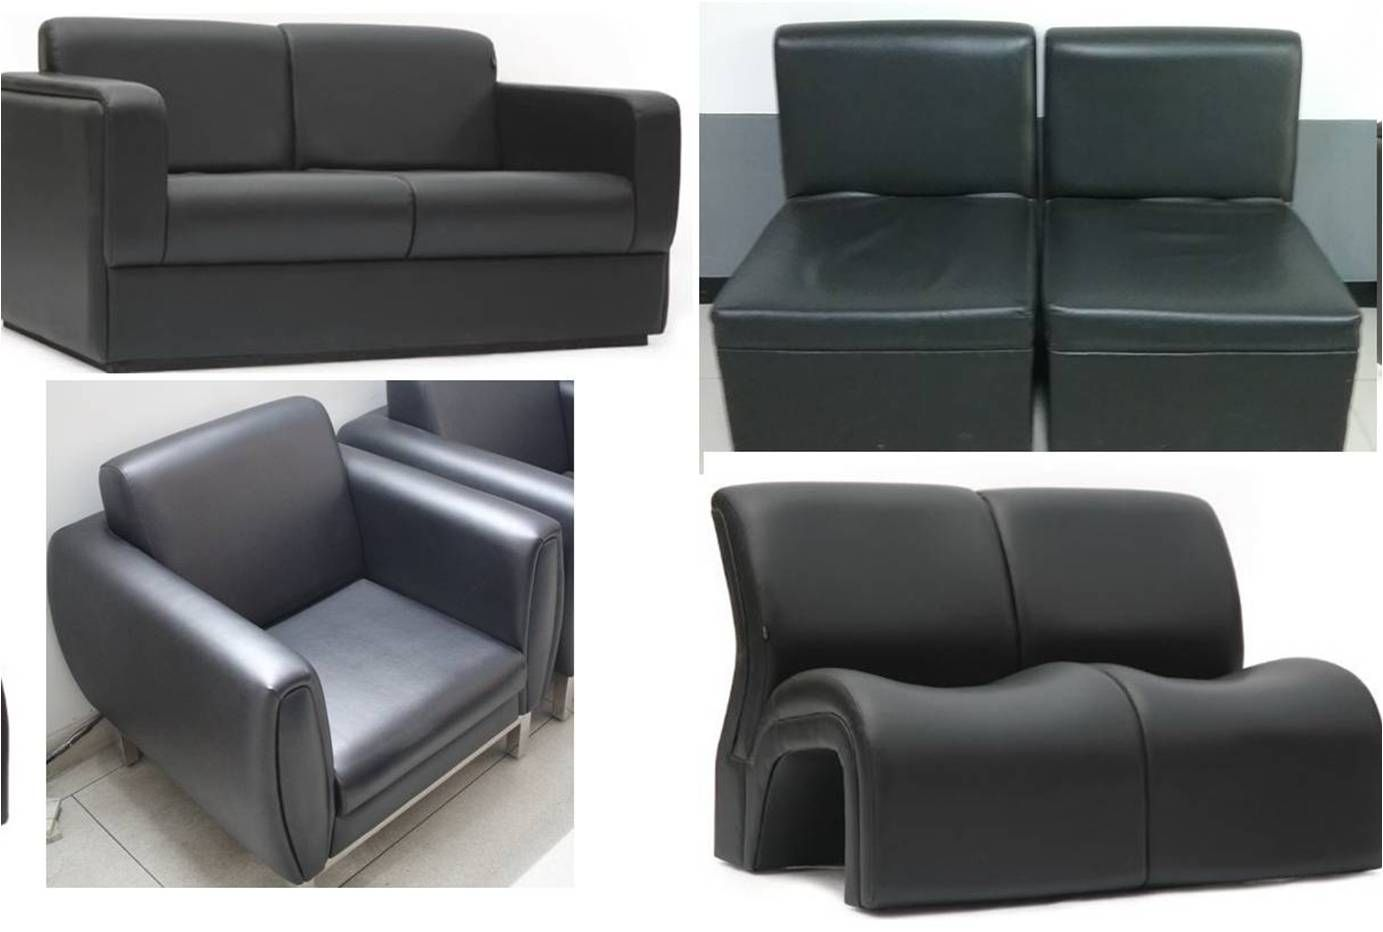 Office Sofa Manufacturer And Vendor Otobi Hatil Material Leather Fabric Size 1050 L X700 W X750 H Mm 1 Sofa Set Price Furniture Sofa Set Furniture